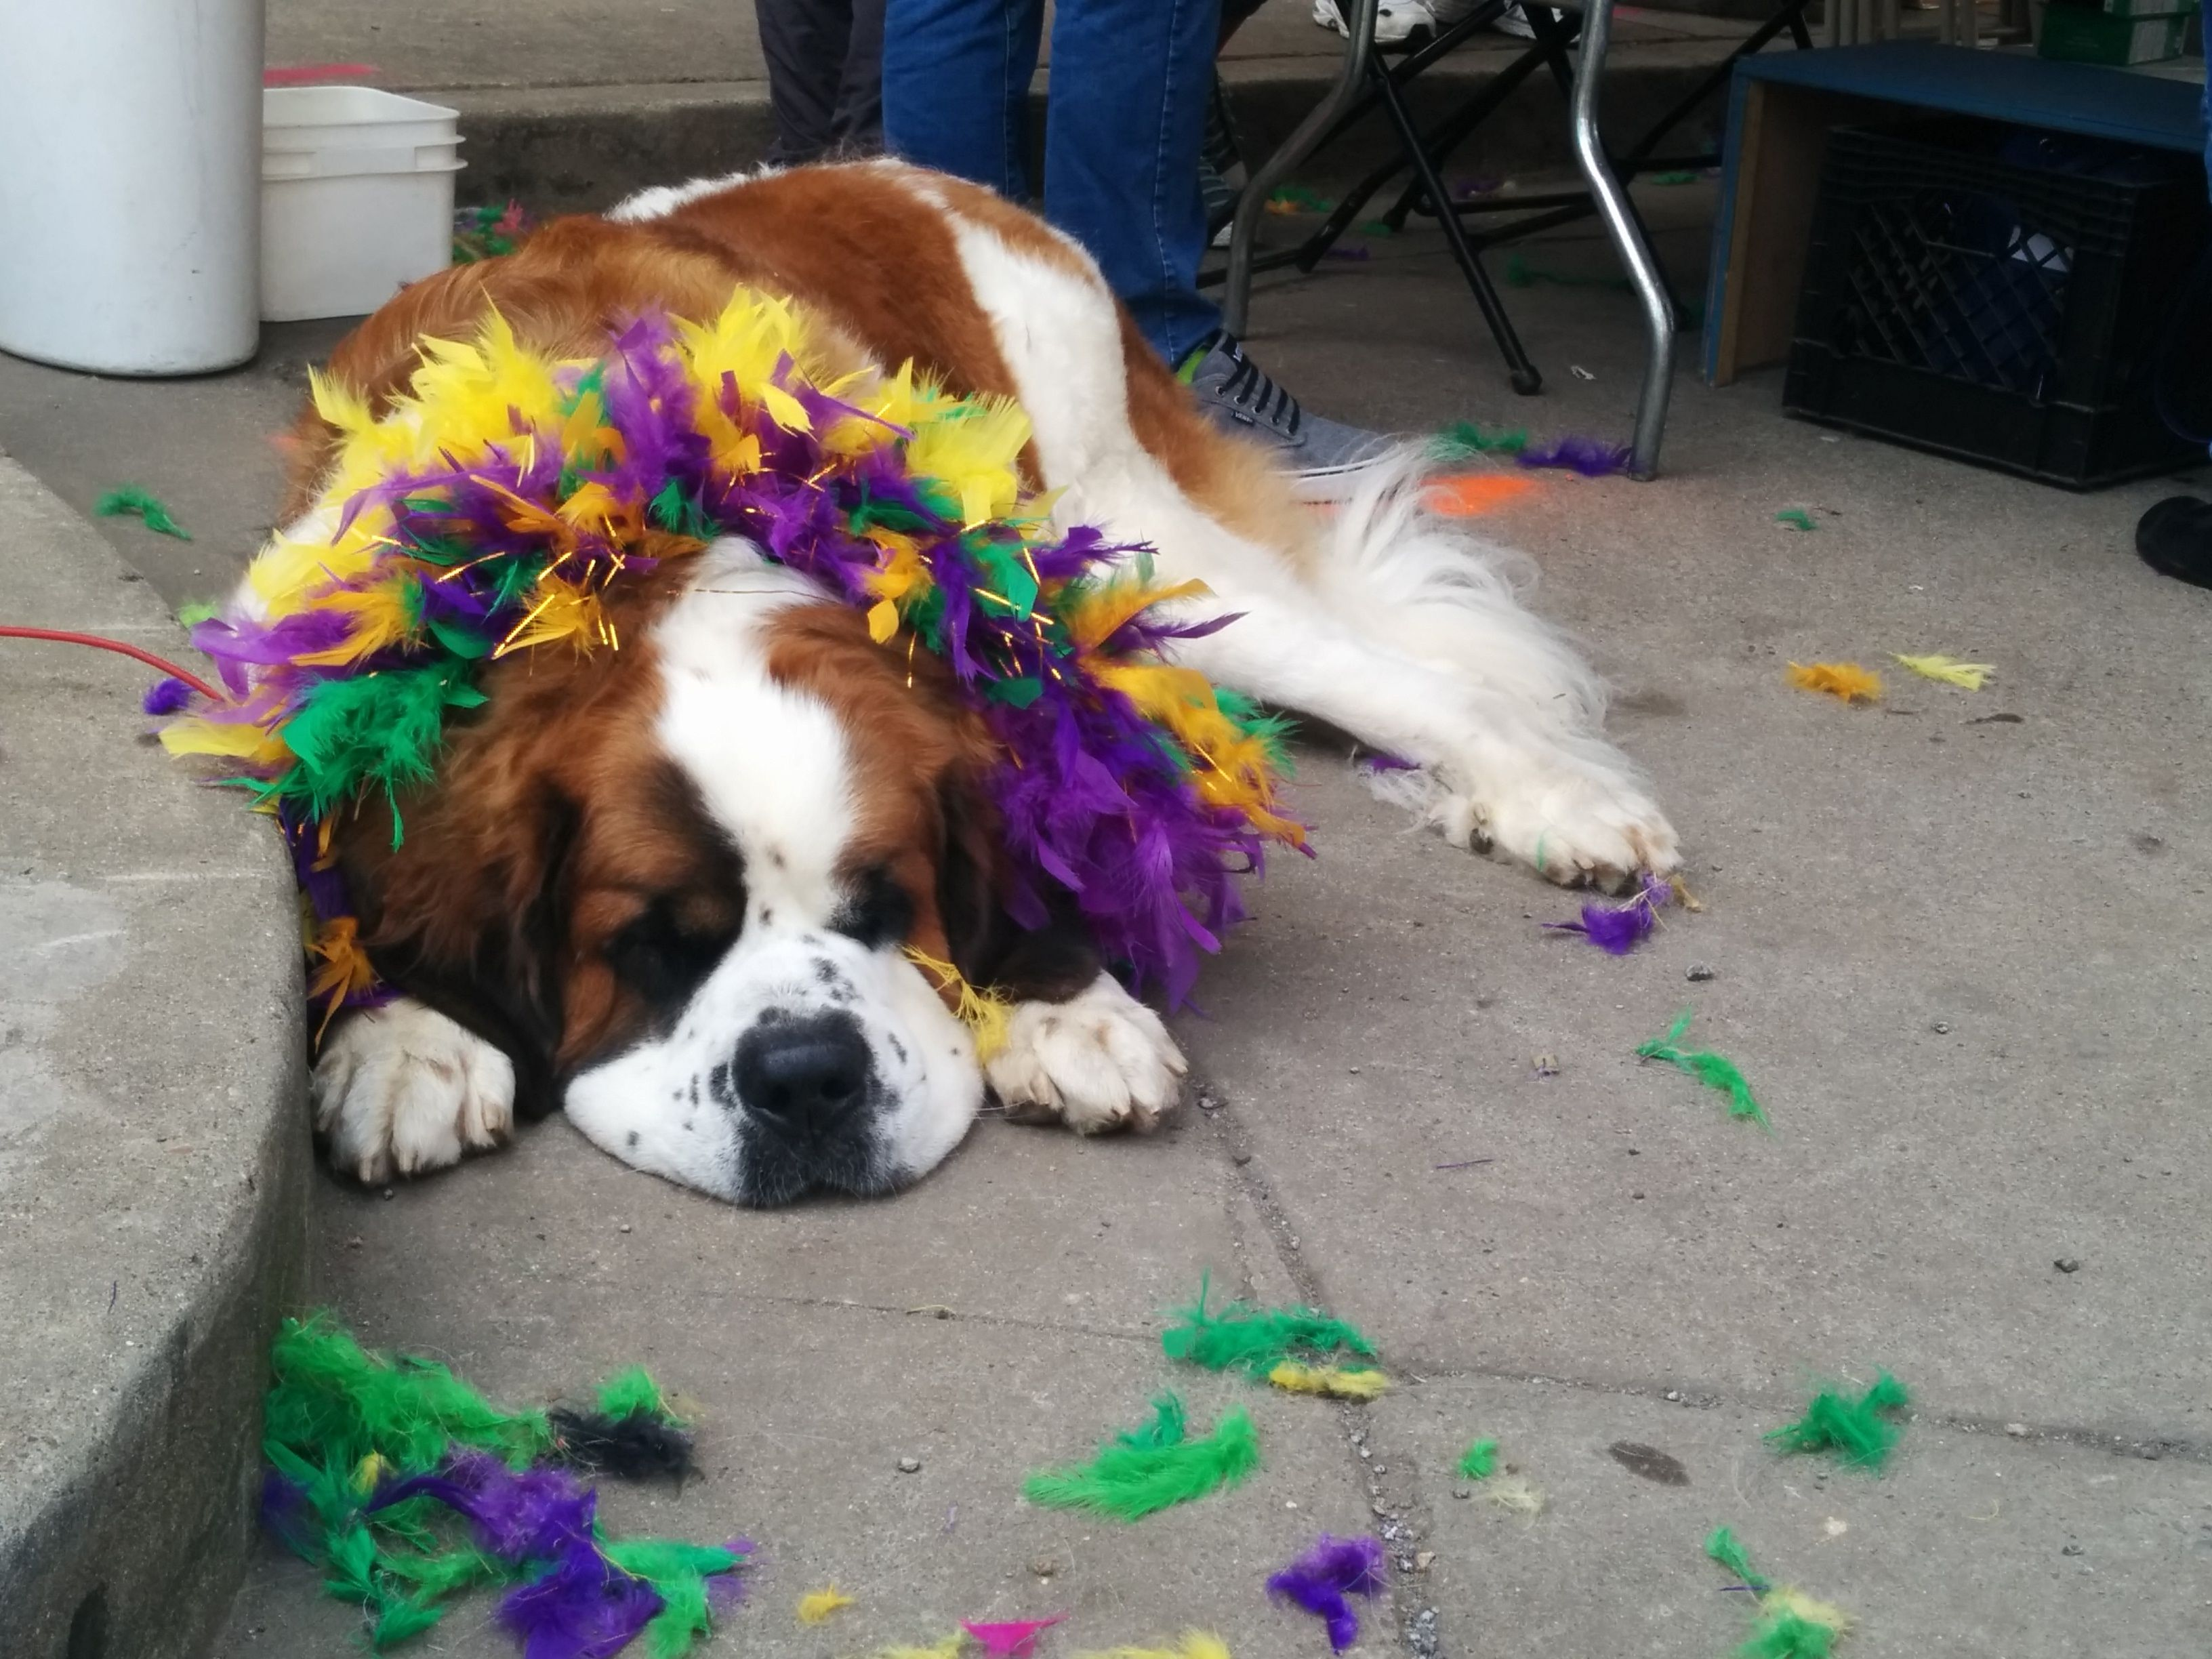 All tuckered out after Mardi Gras